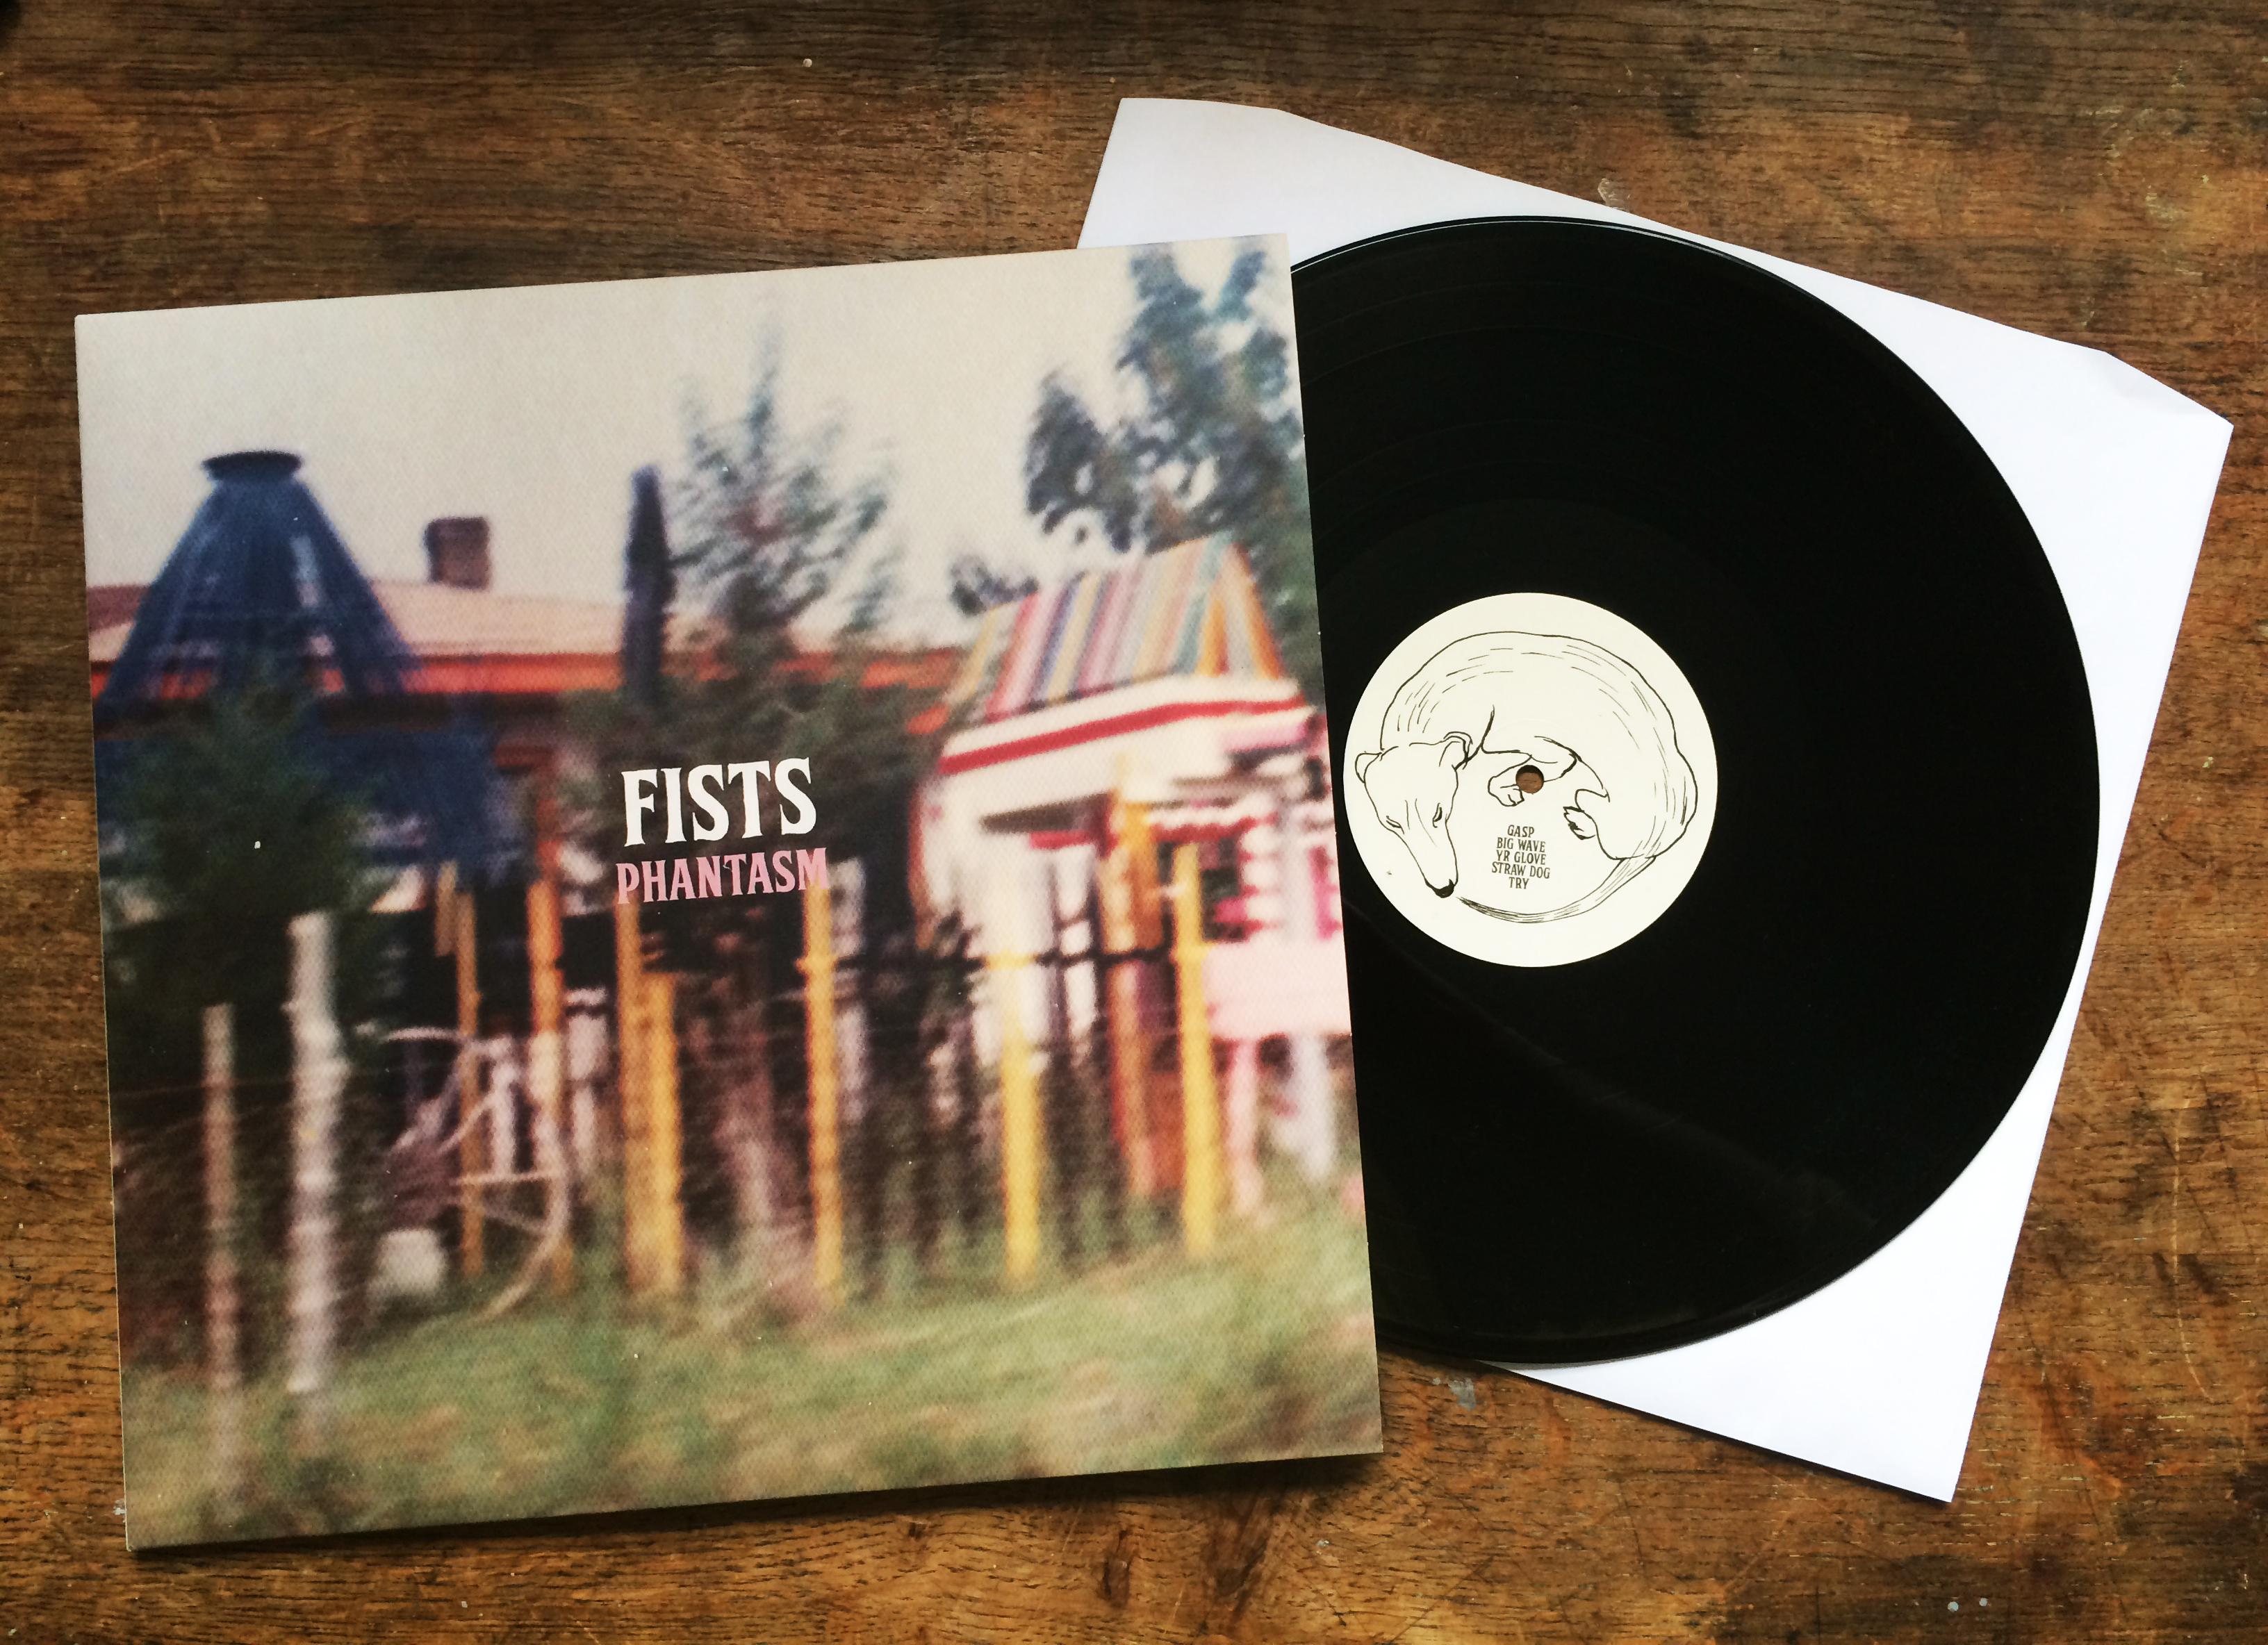 'Phantasm' Debut album by Fists